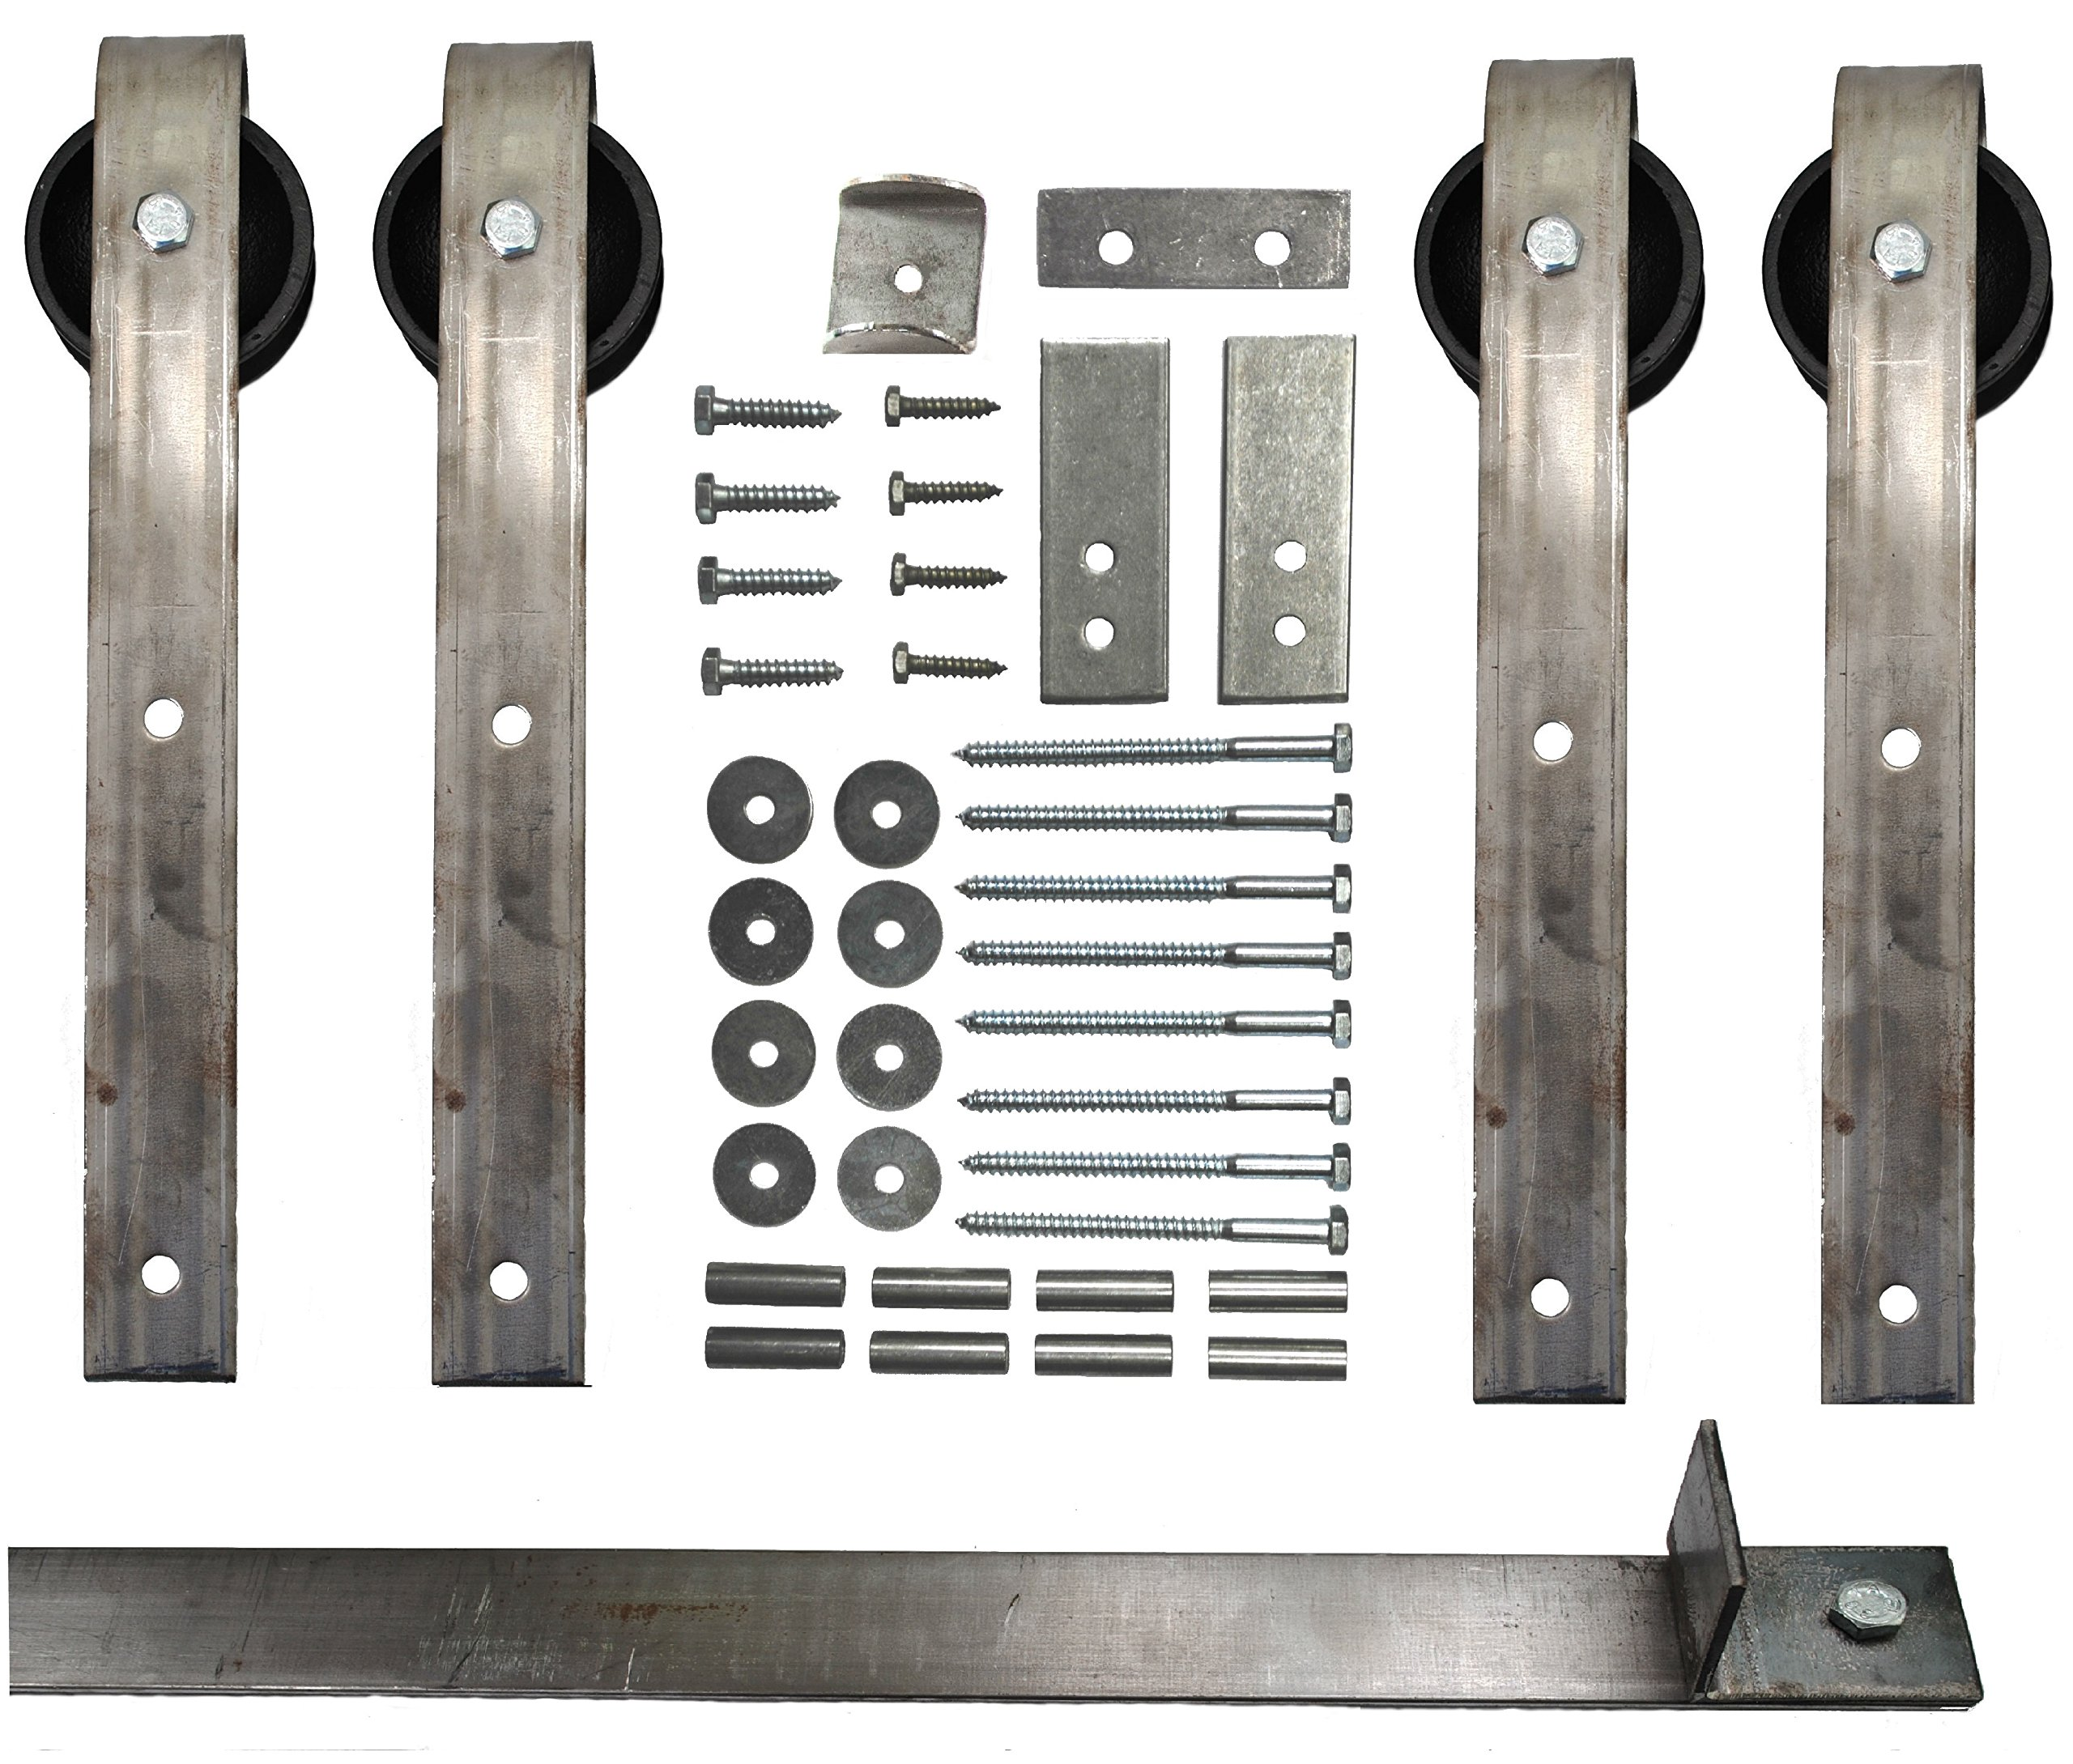 Double Sliding Barn Door Hardware Kit with 8 Ft. Track Included - Made in USA by Mapp Caster